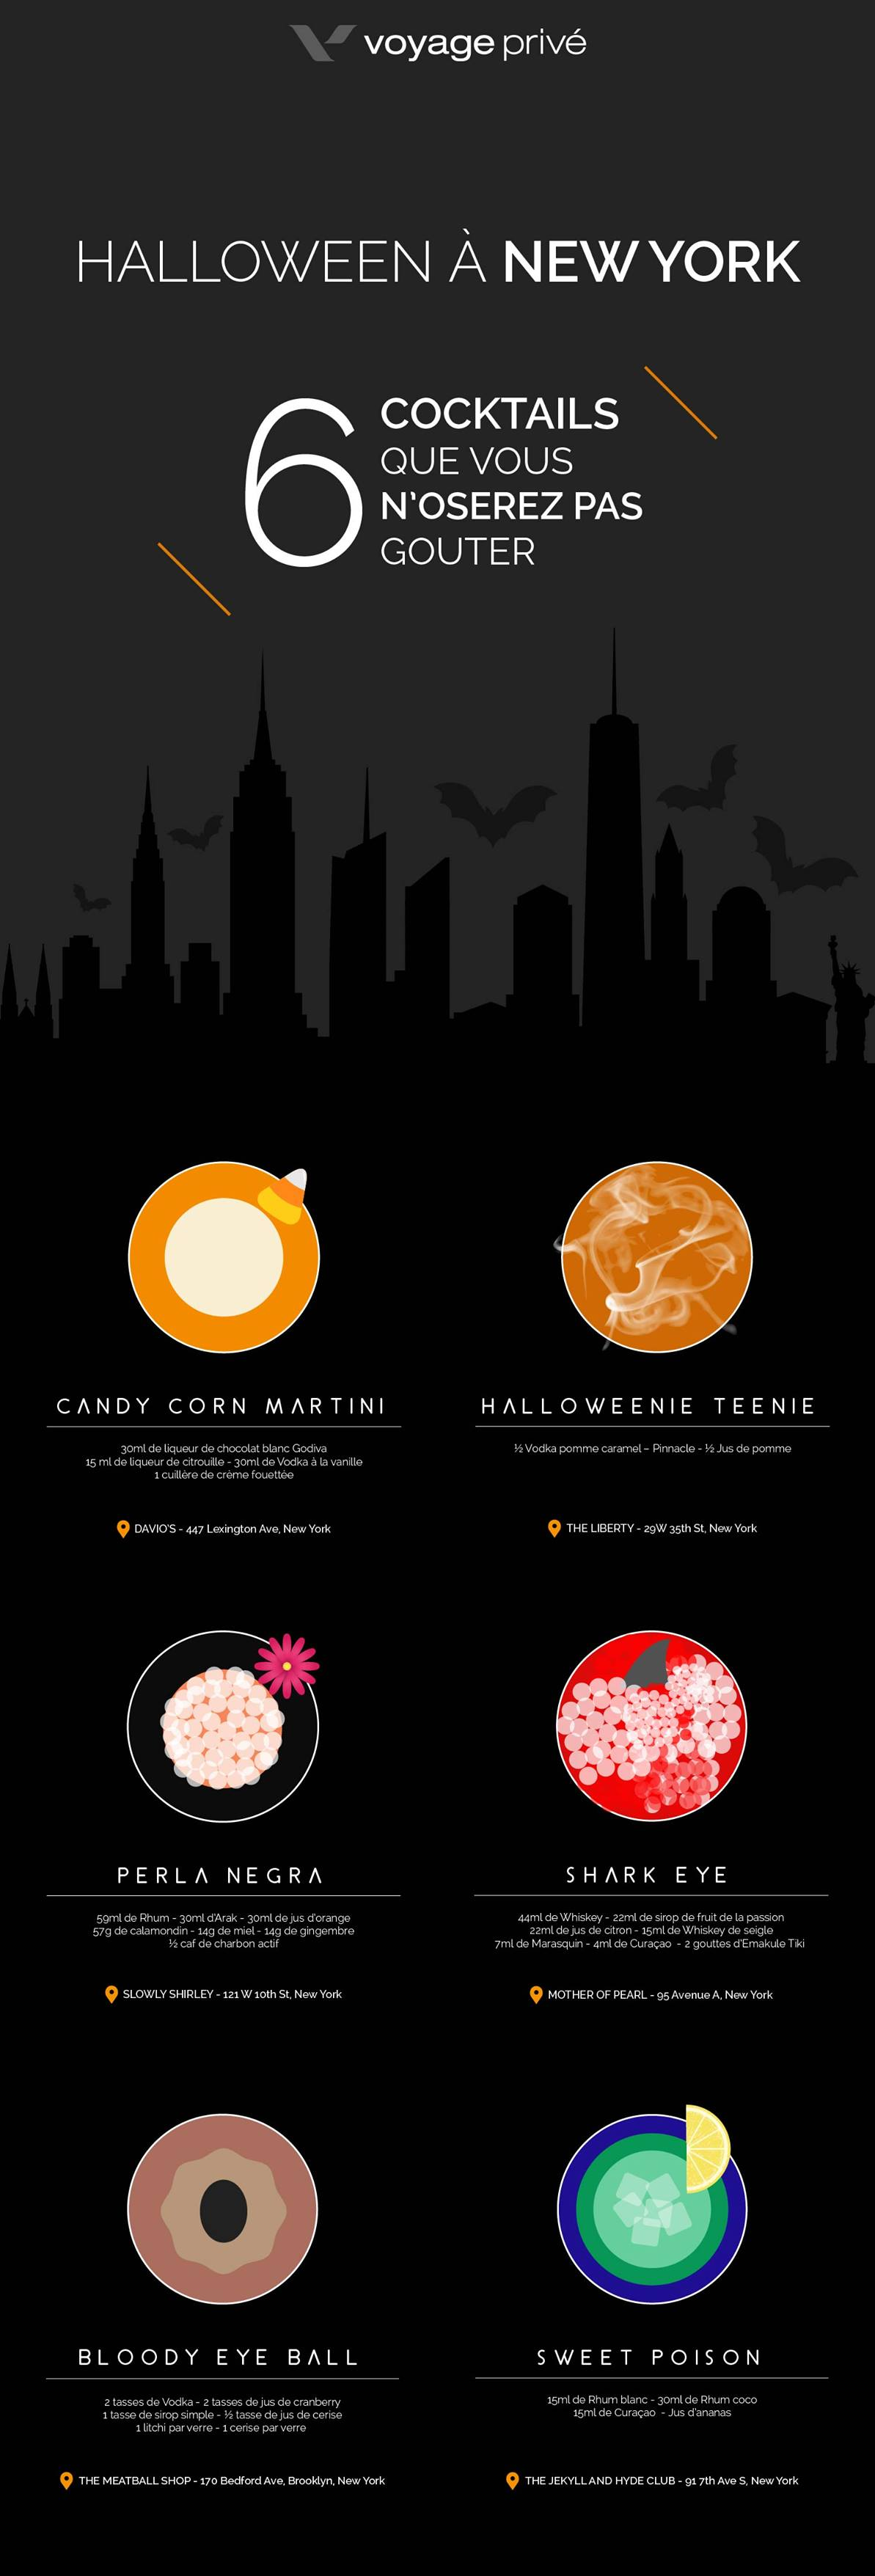 Cocktail pour Halloween à New York